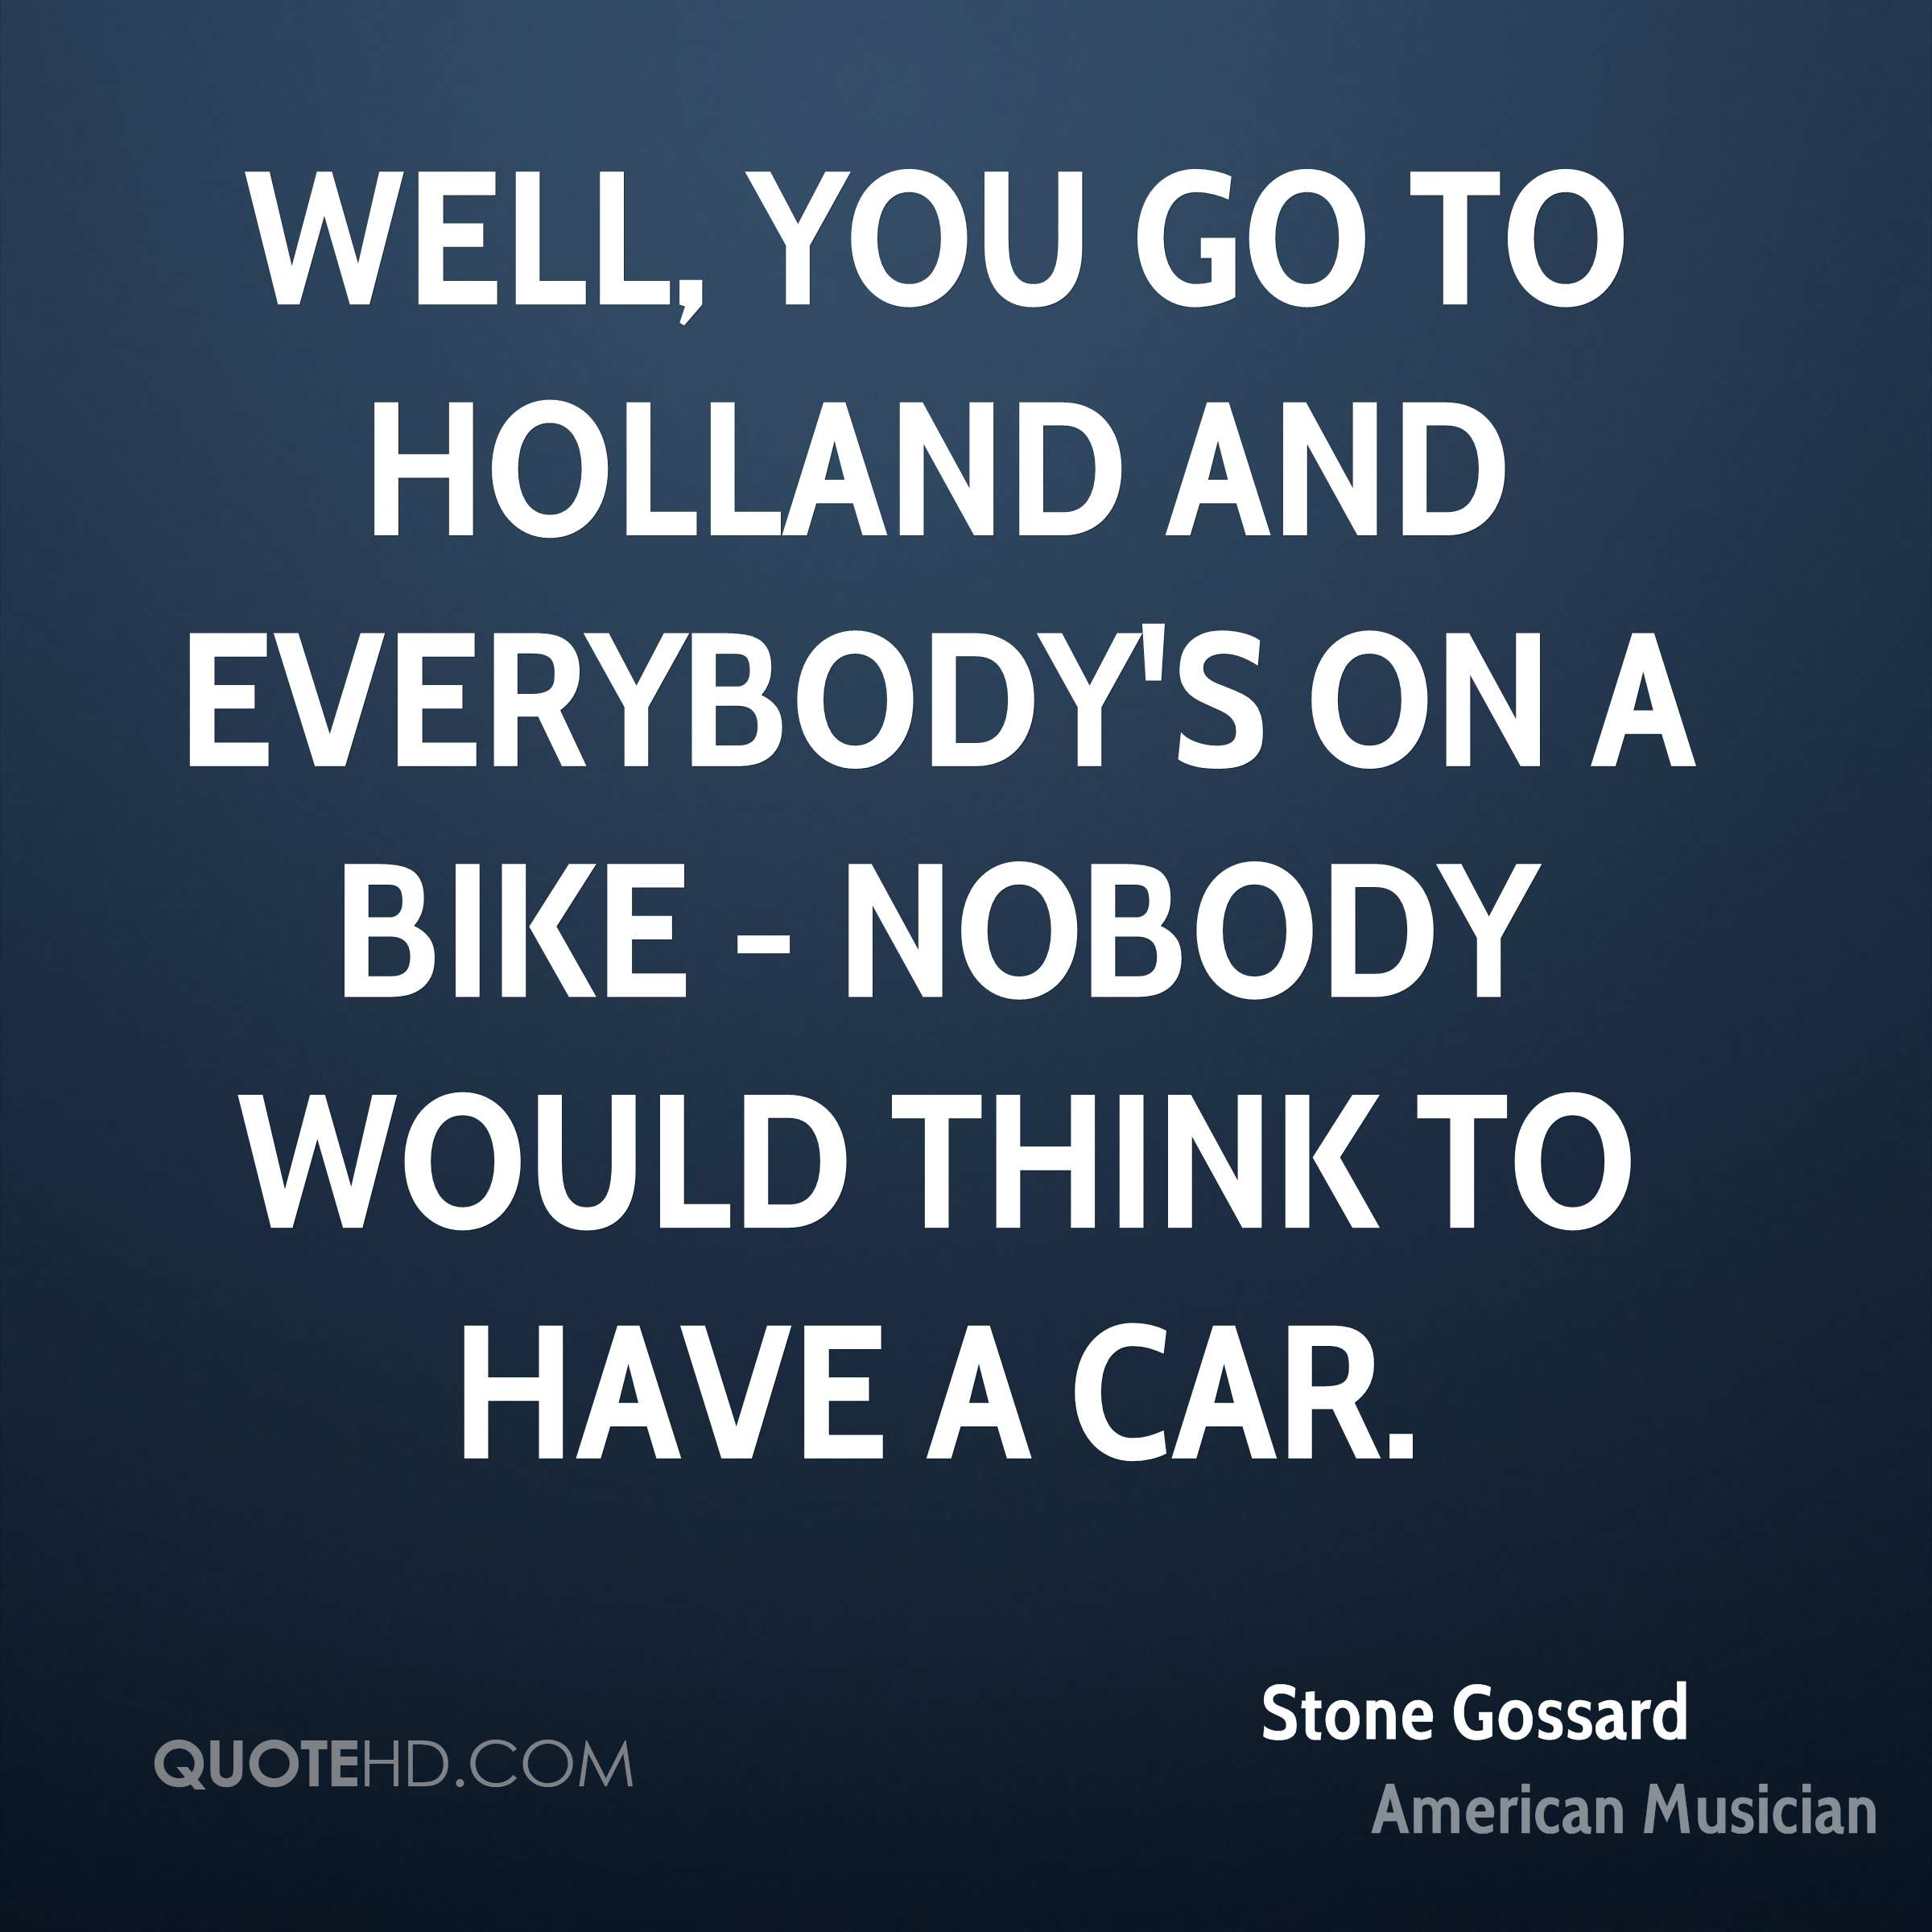 Well, you go to Holland and everybody's on a bike - nobody would think to have a car.